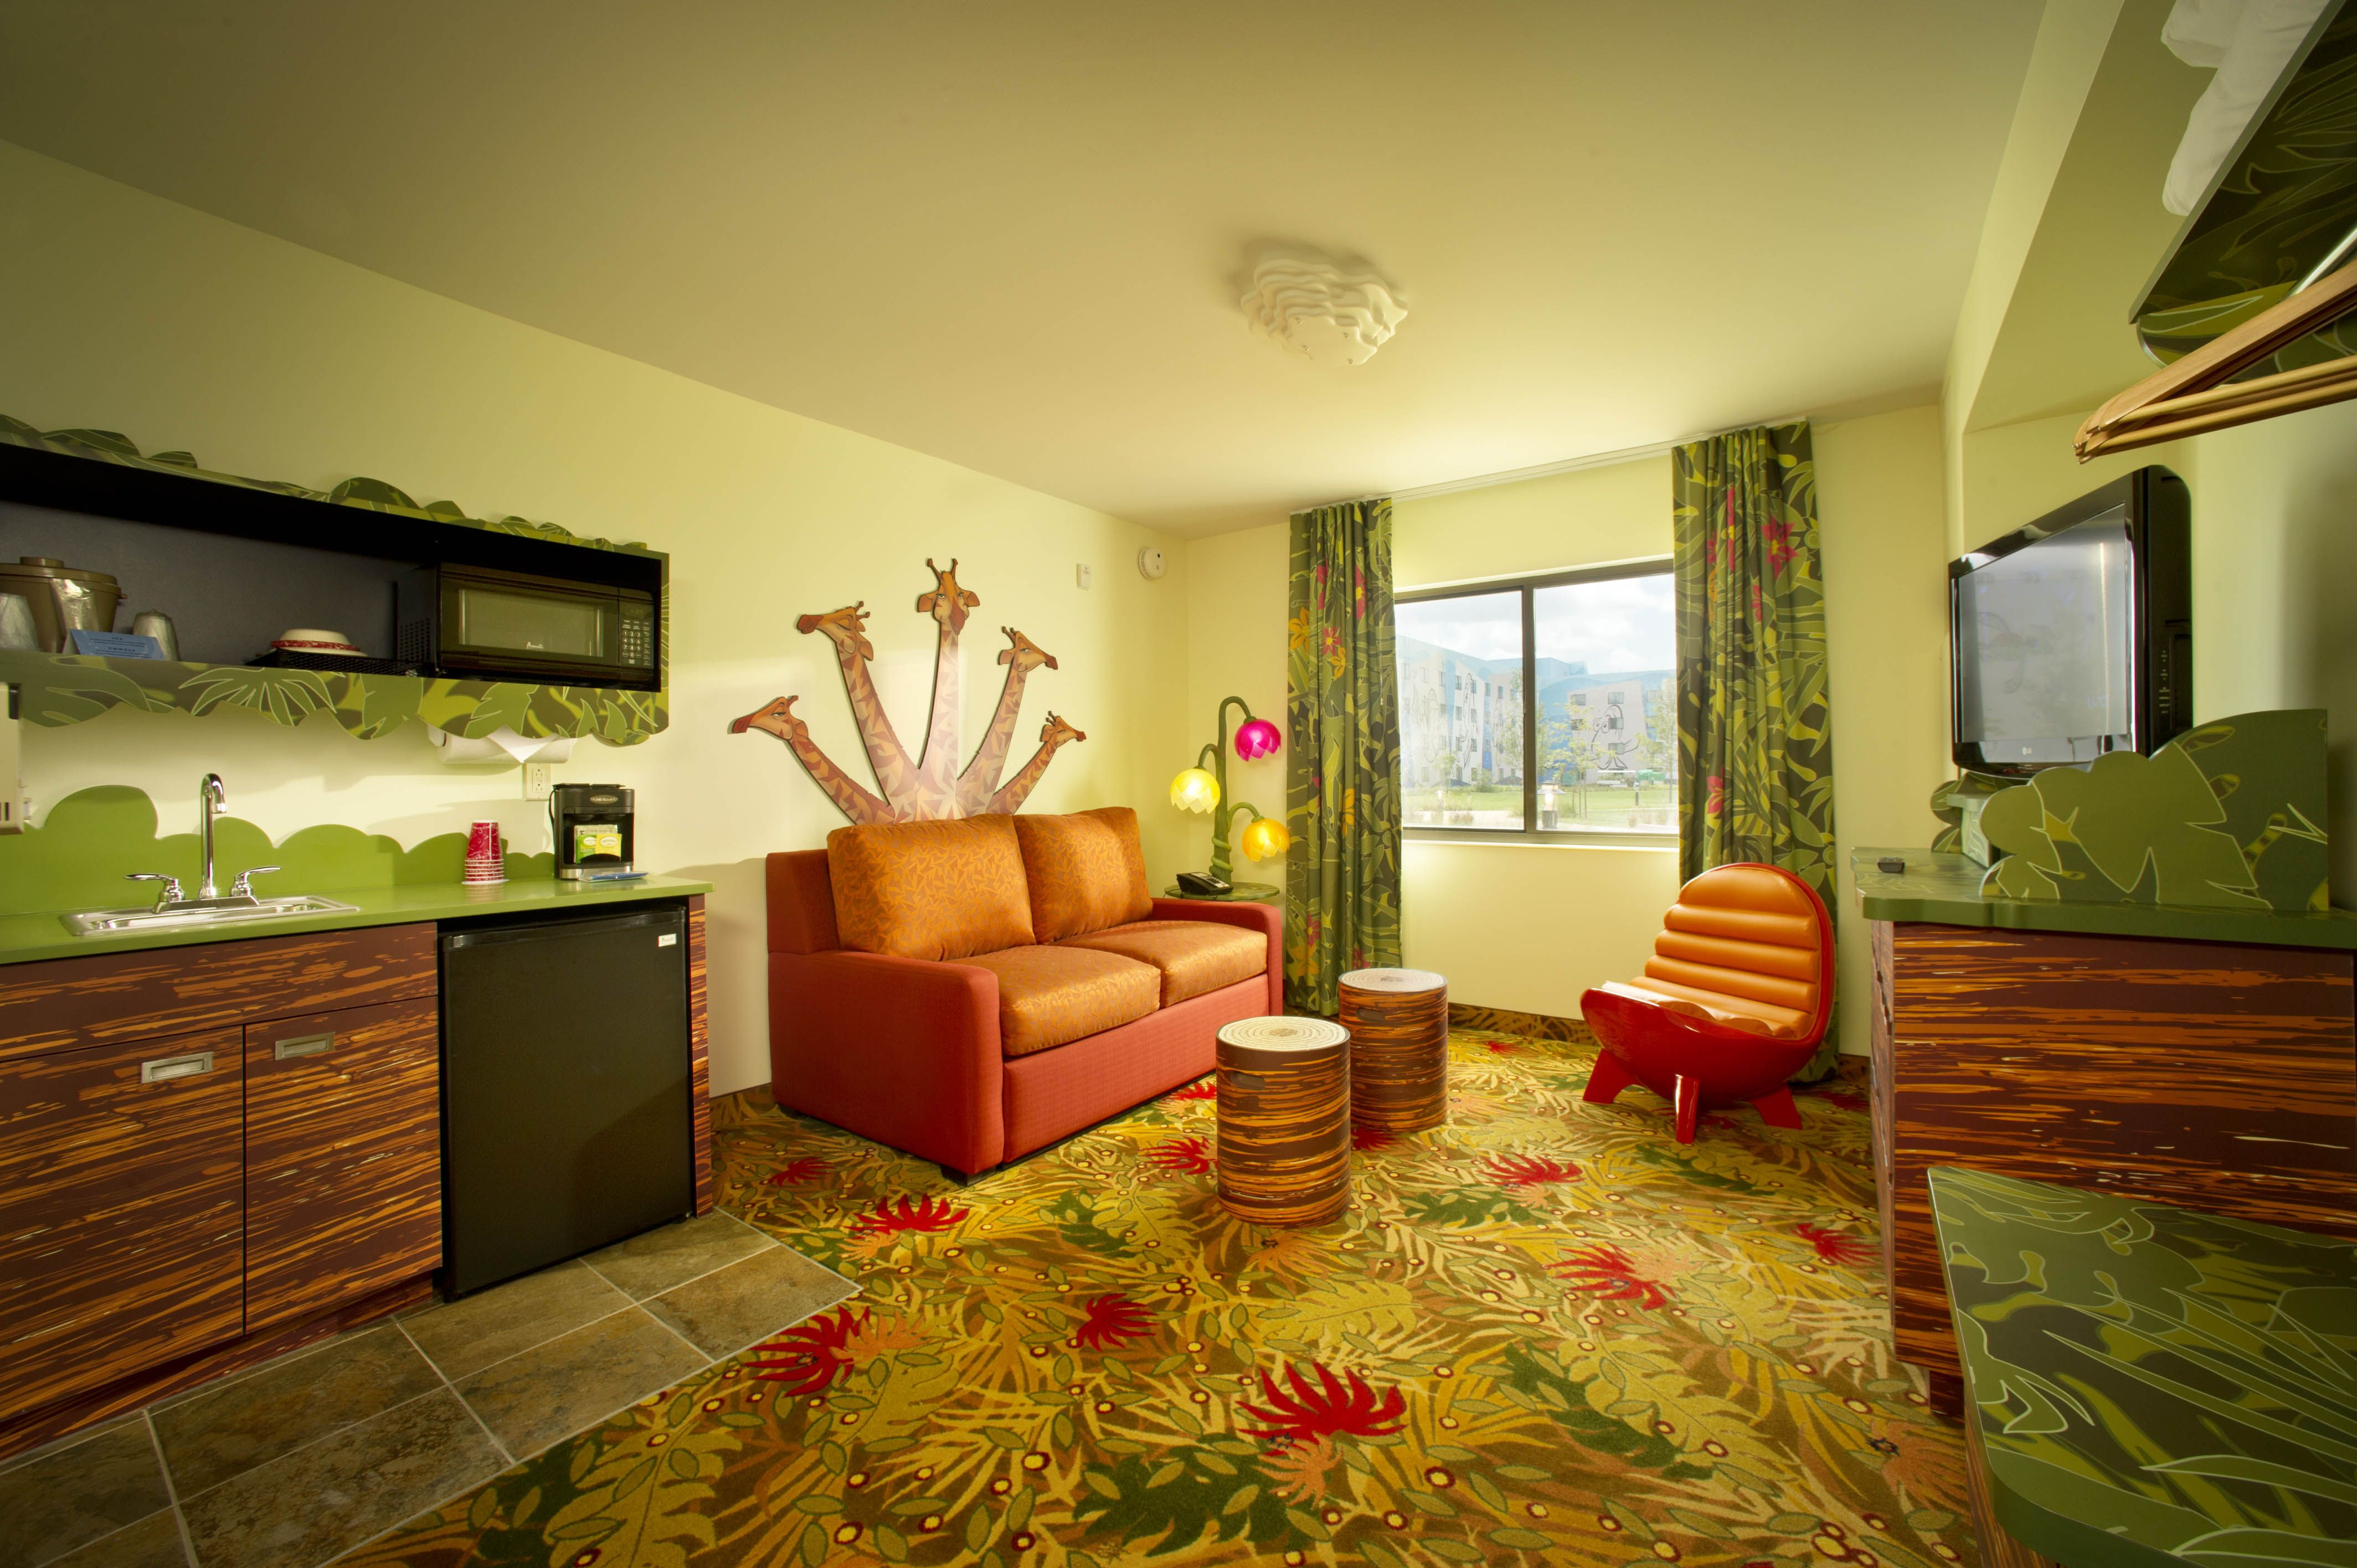 hotels with full kitchens in orlando florida pics of kitchen cabinets best disney world resorts suites s art animation resort